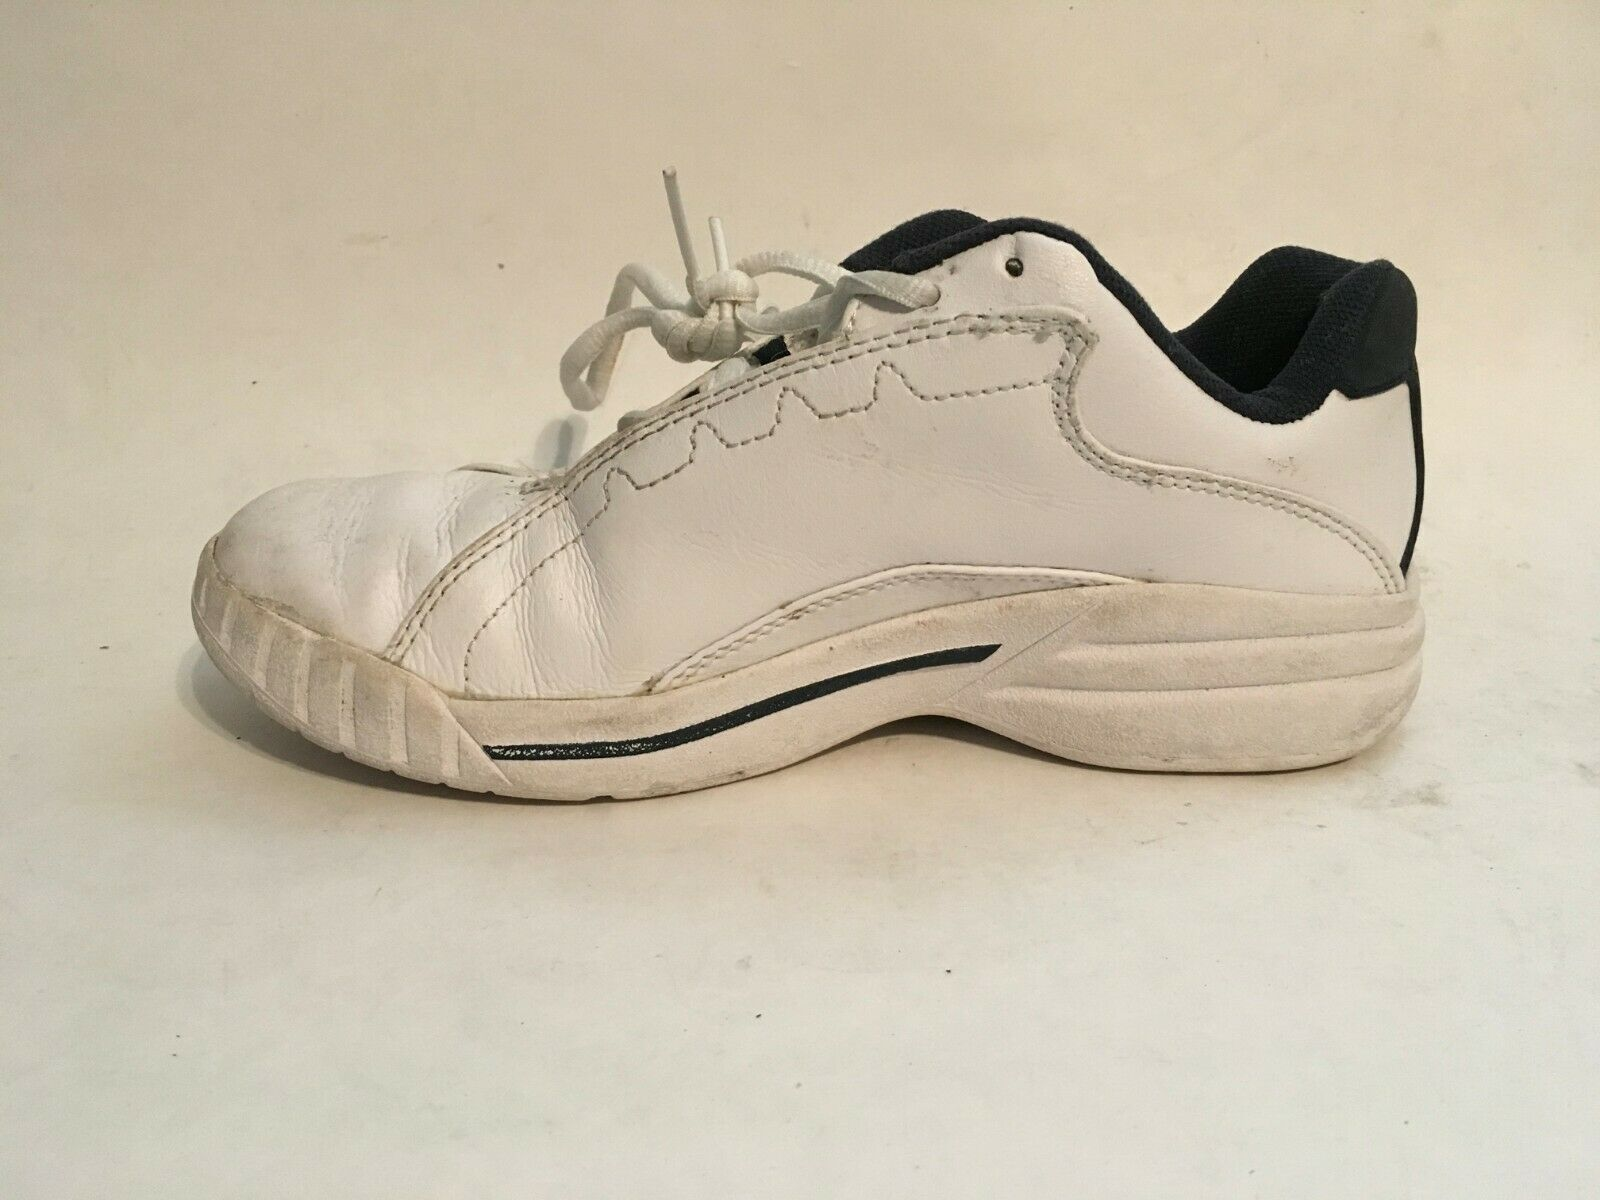 Converse All-Star Womens White Leather Athletic Running Walking Shoes sz 5 image 4